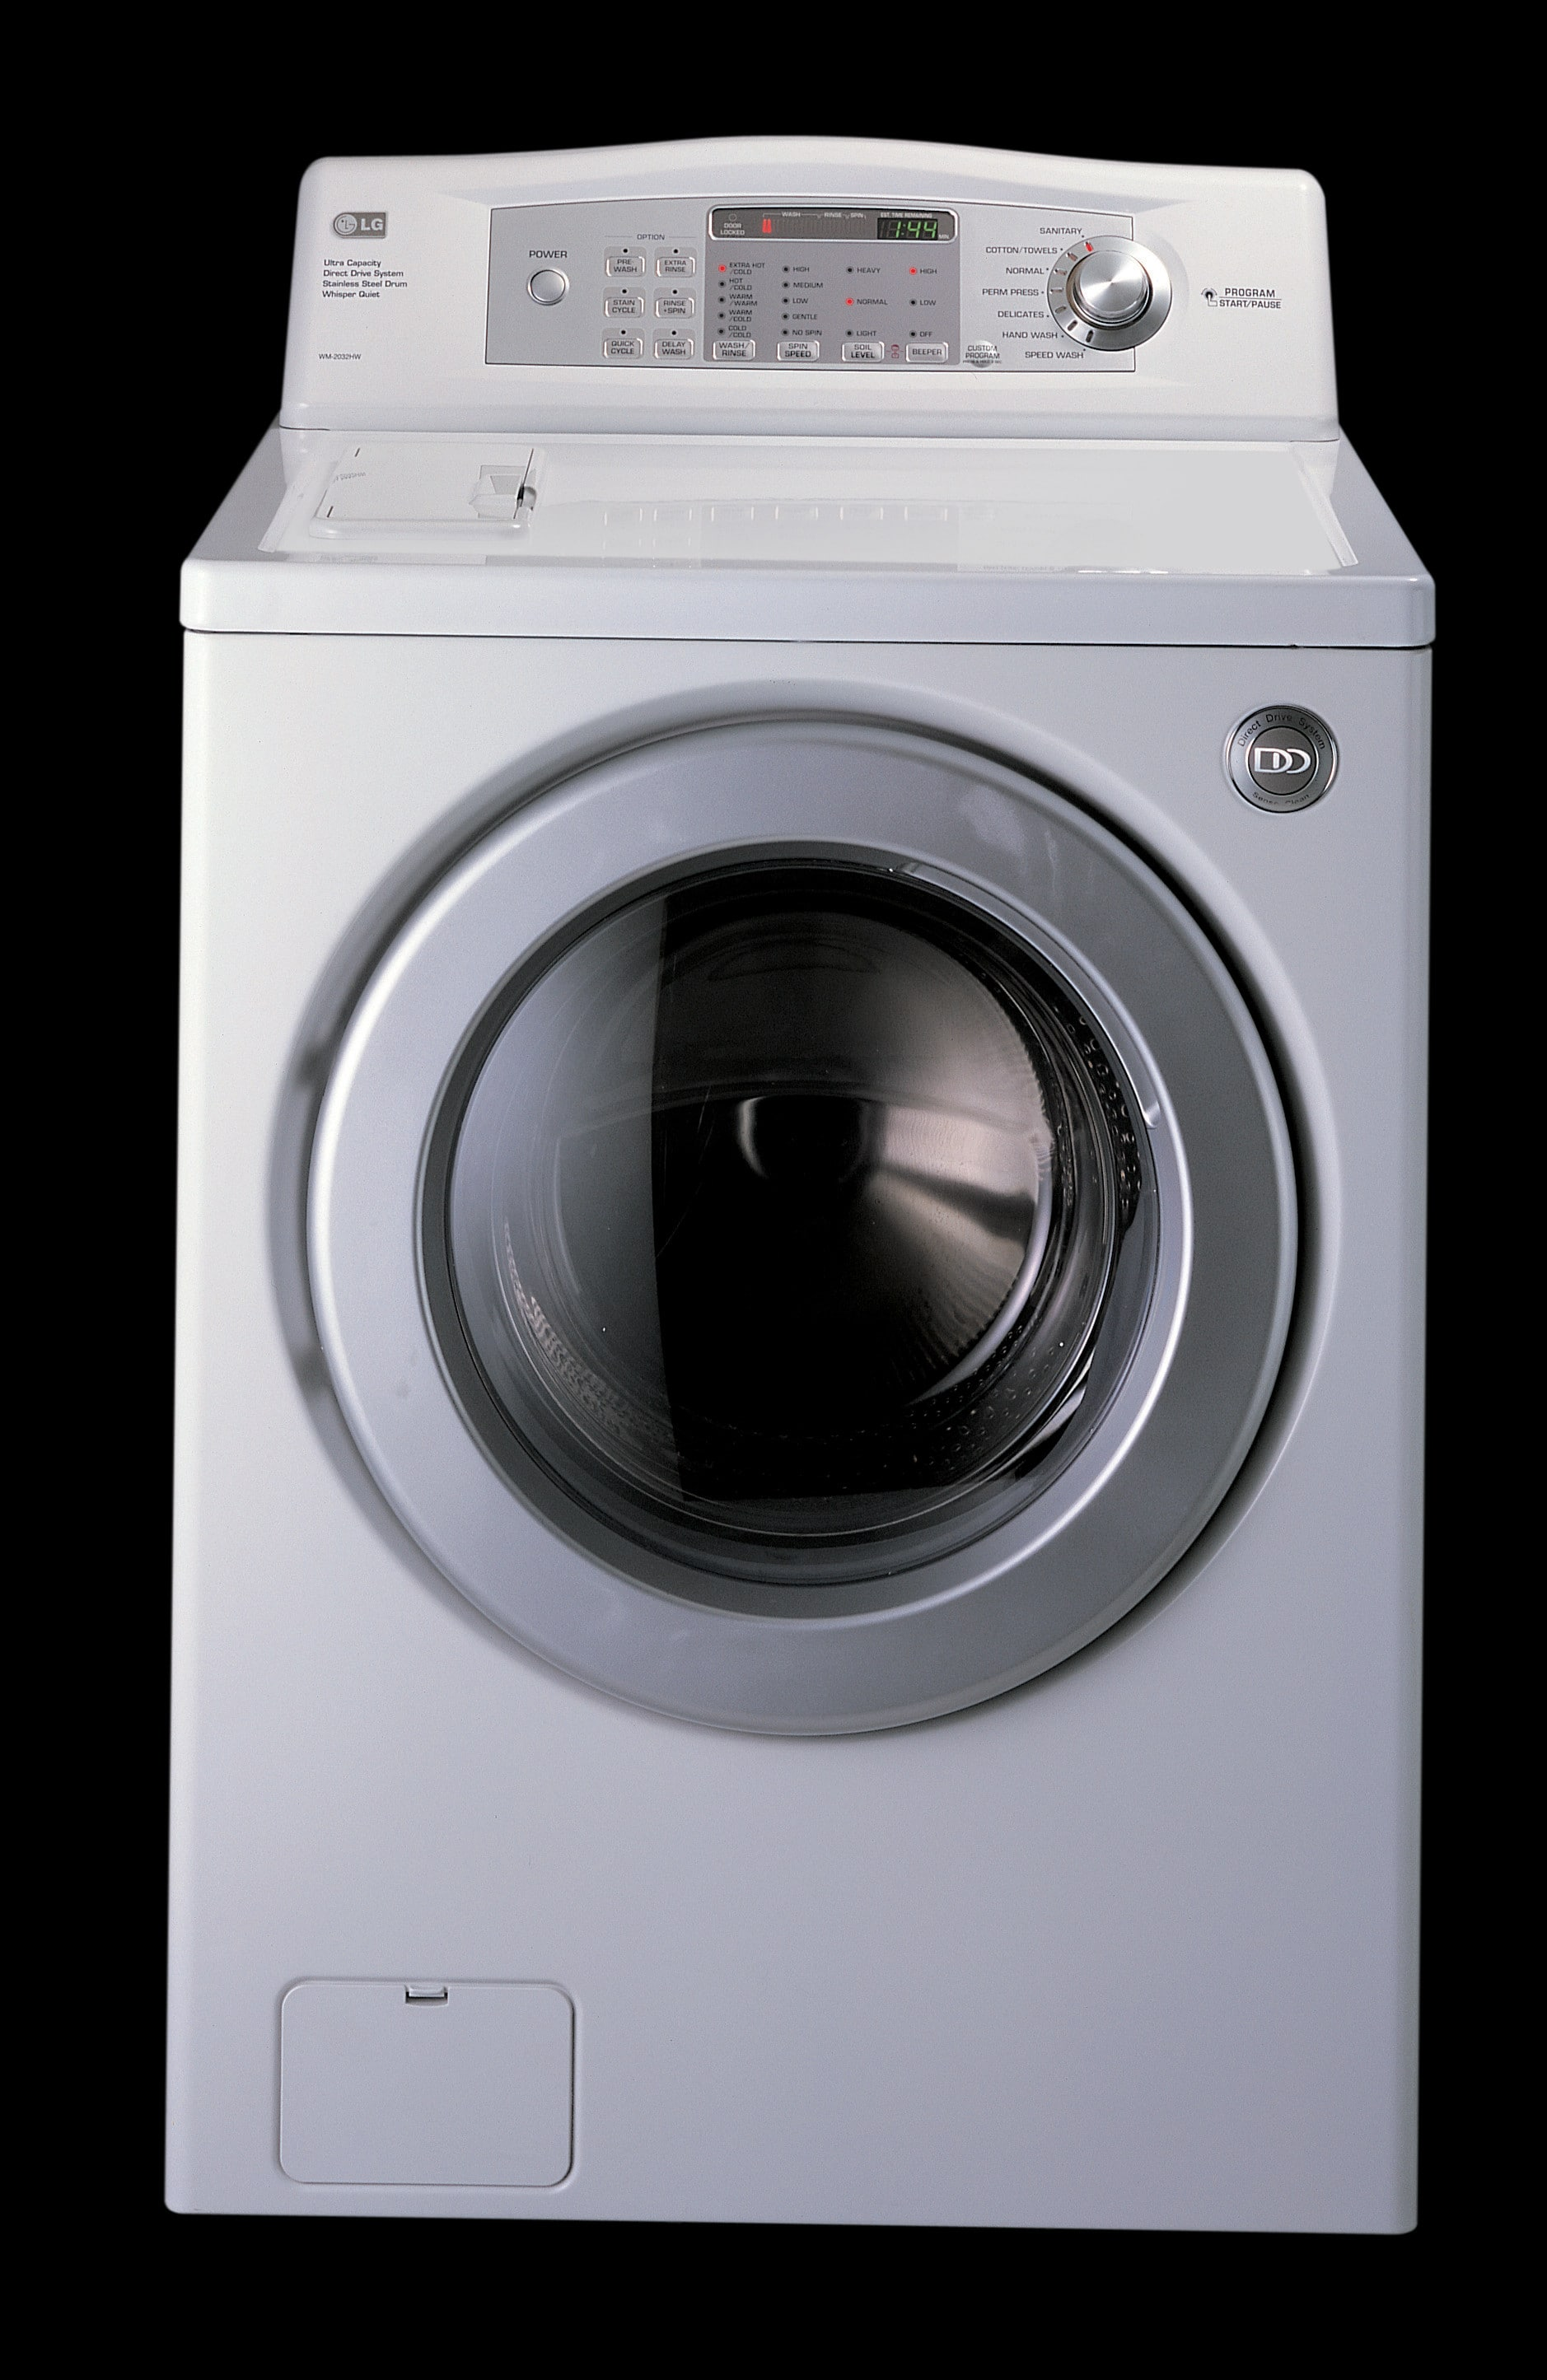 Lg Wm2032hw 27 Inch Front Load Washer W 3 72 Cu Ft